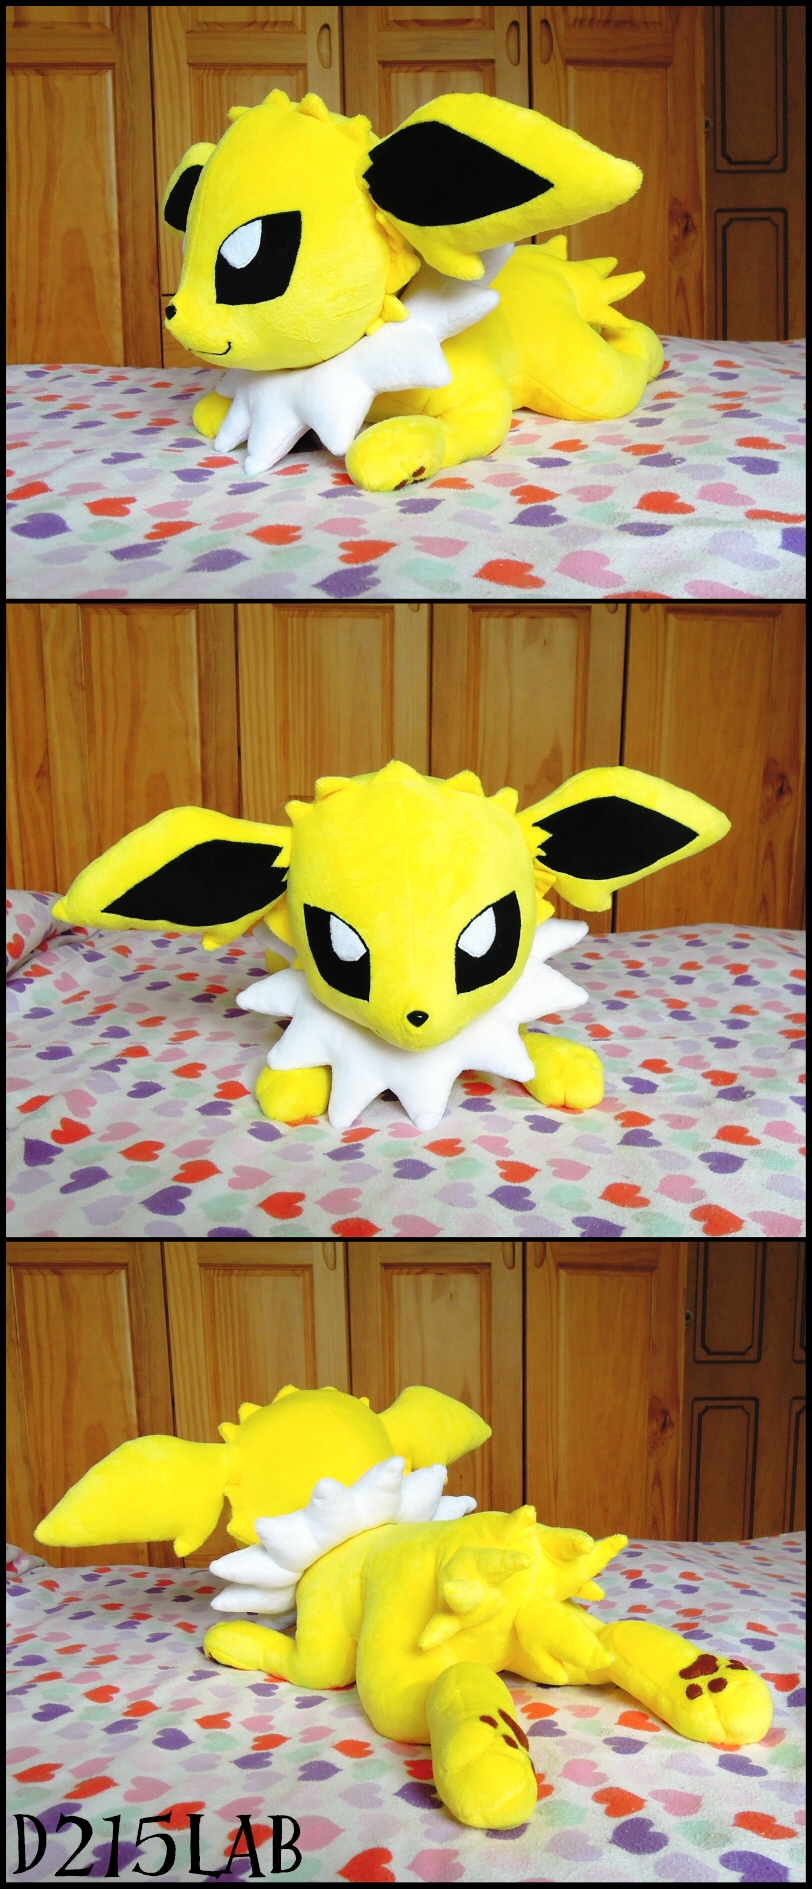 Jolteon plush by d215lab